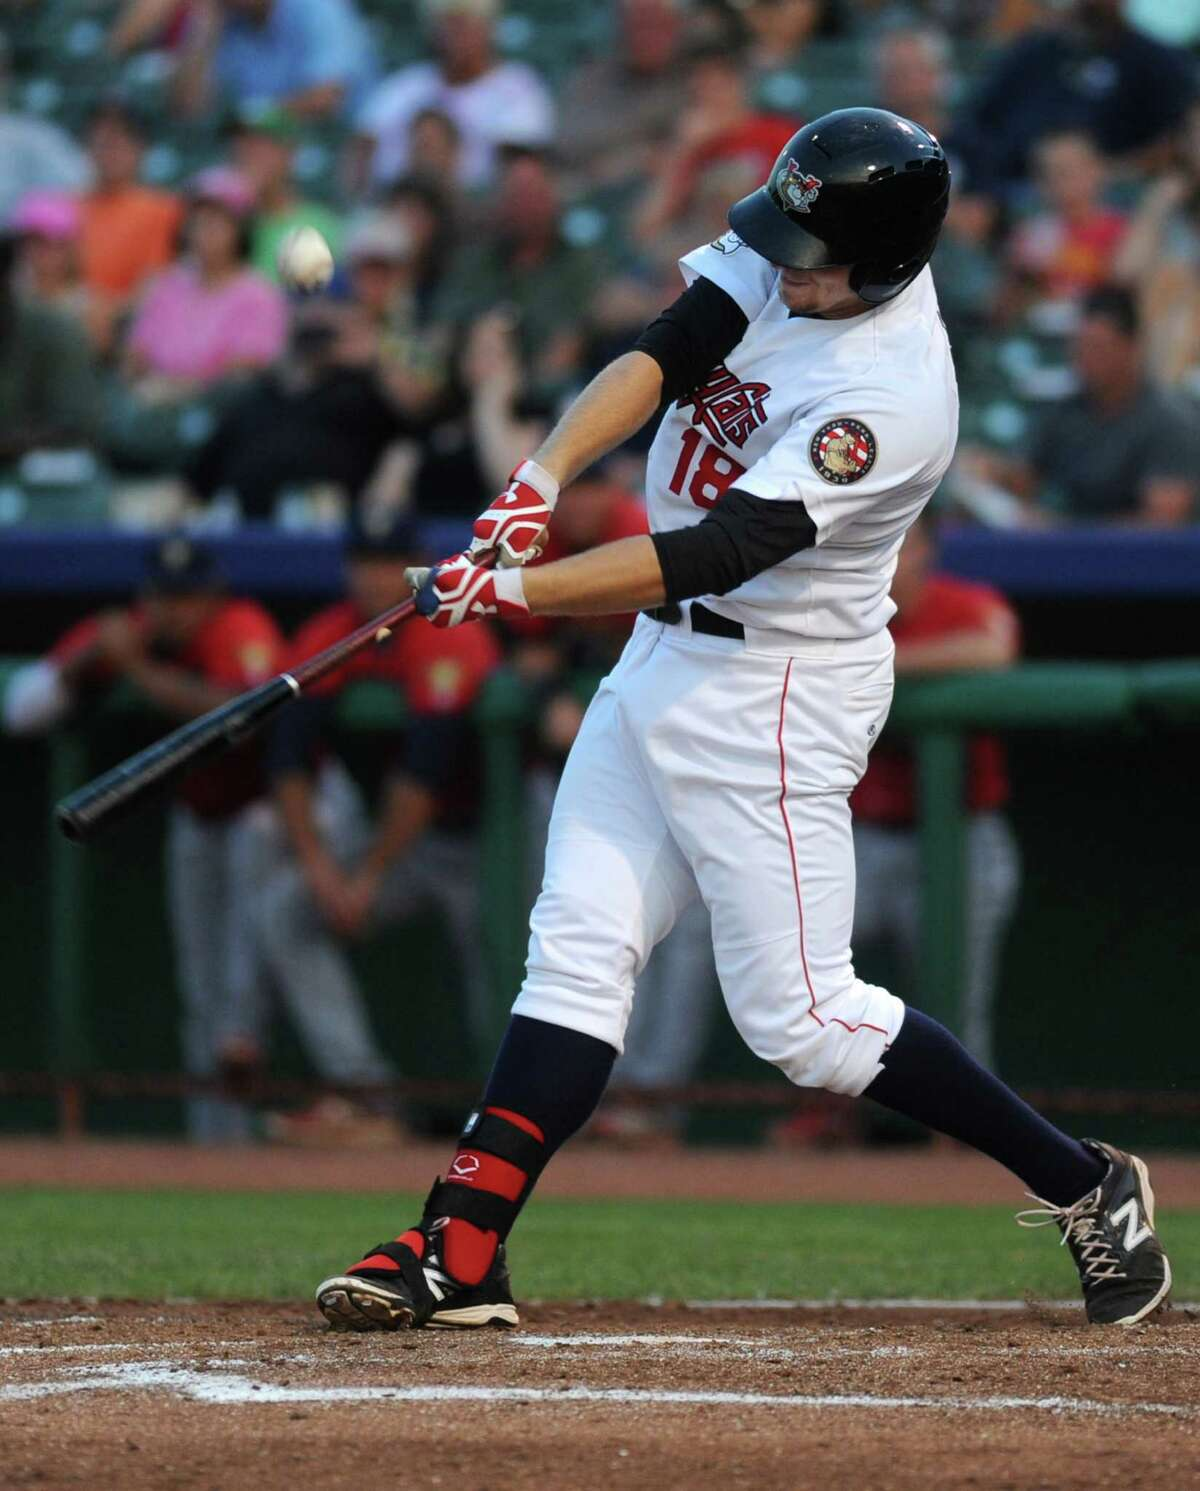 Tri-City ValleyCats batter AJ Reed hits the ball during a baseball game against the State College Spikes on Monday, July 21, 2014 in Troy, N.Y. (Lori Van Buren / Times Union)